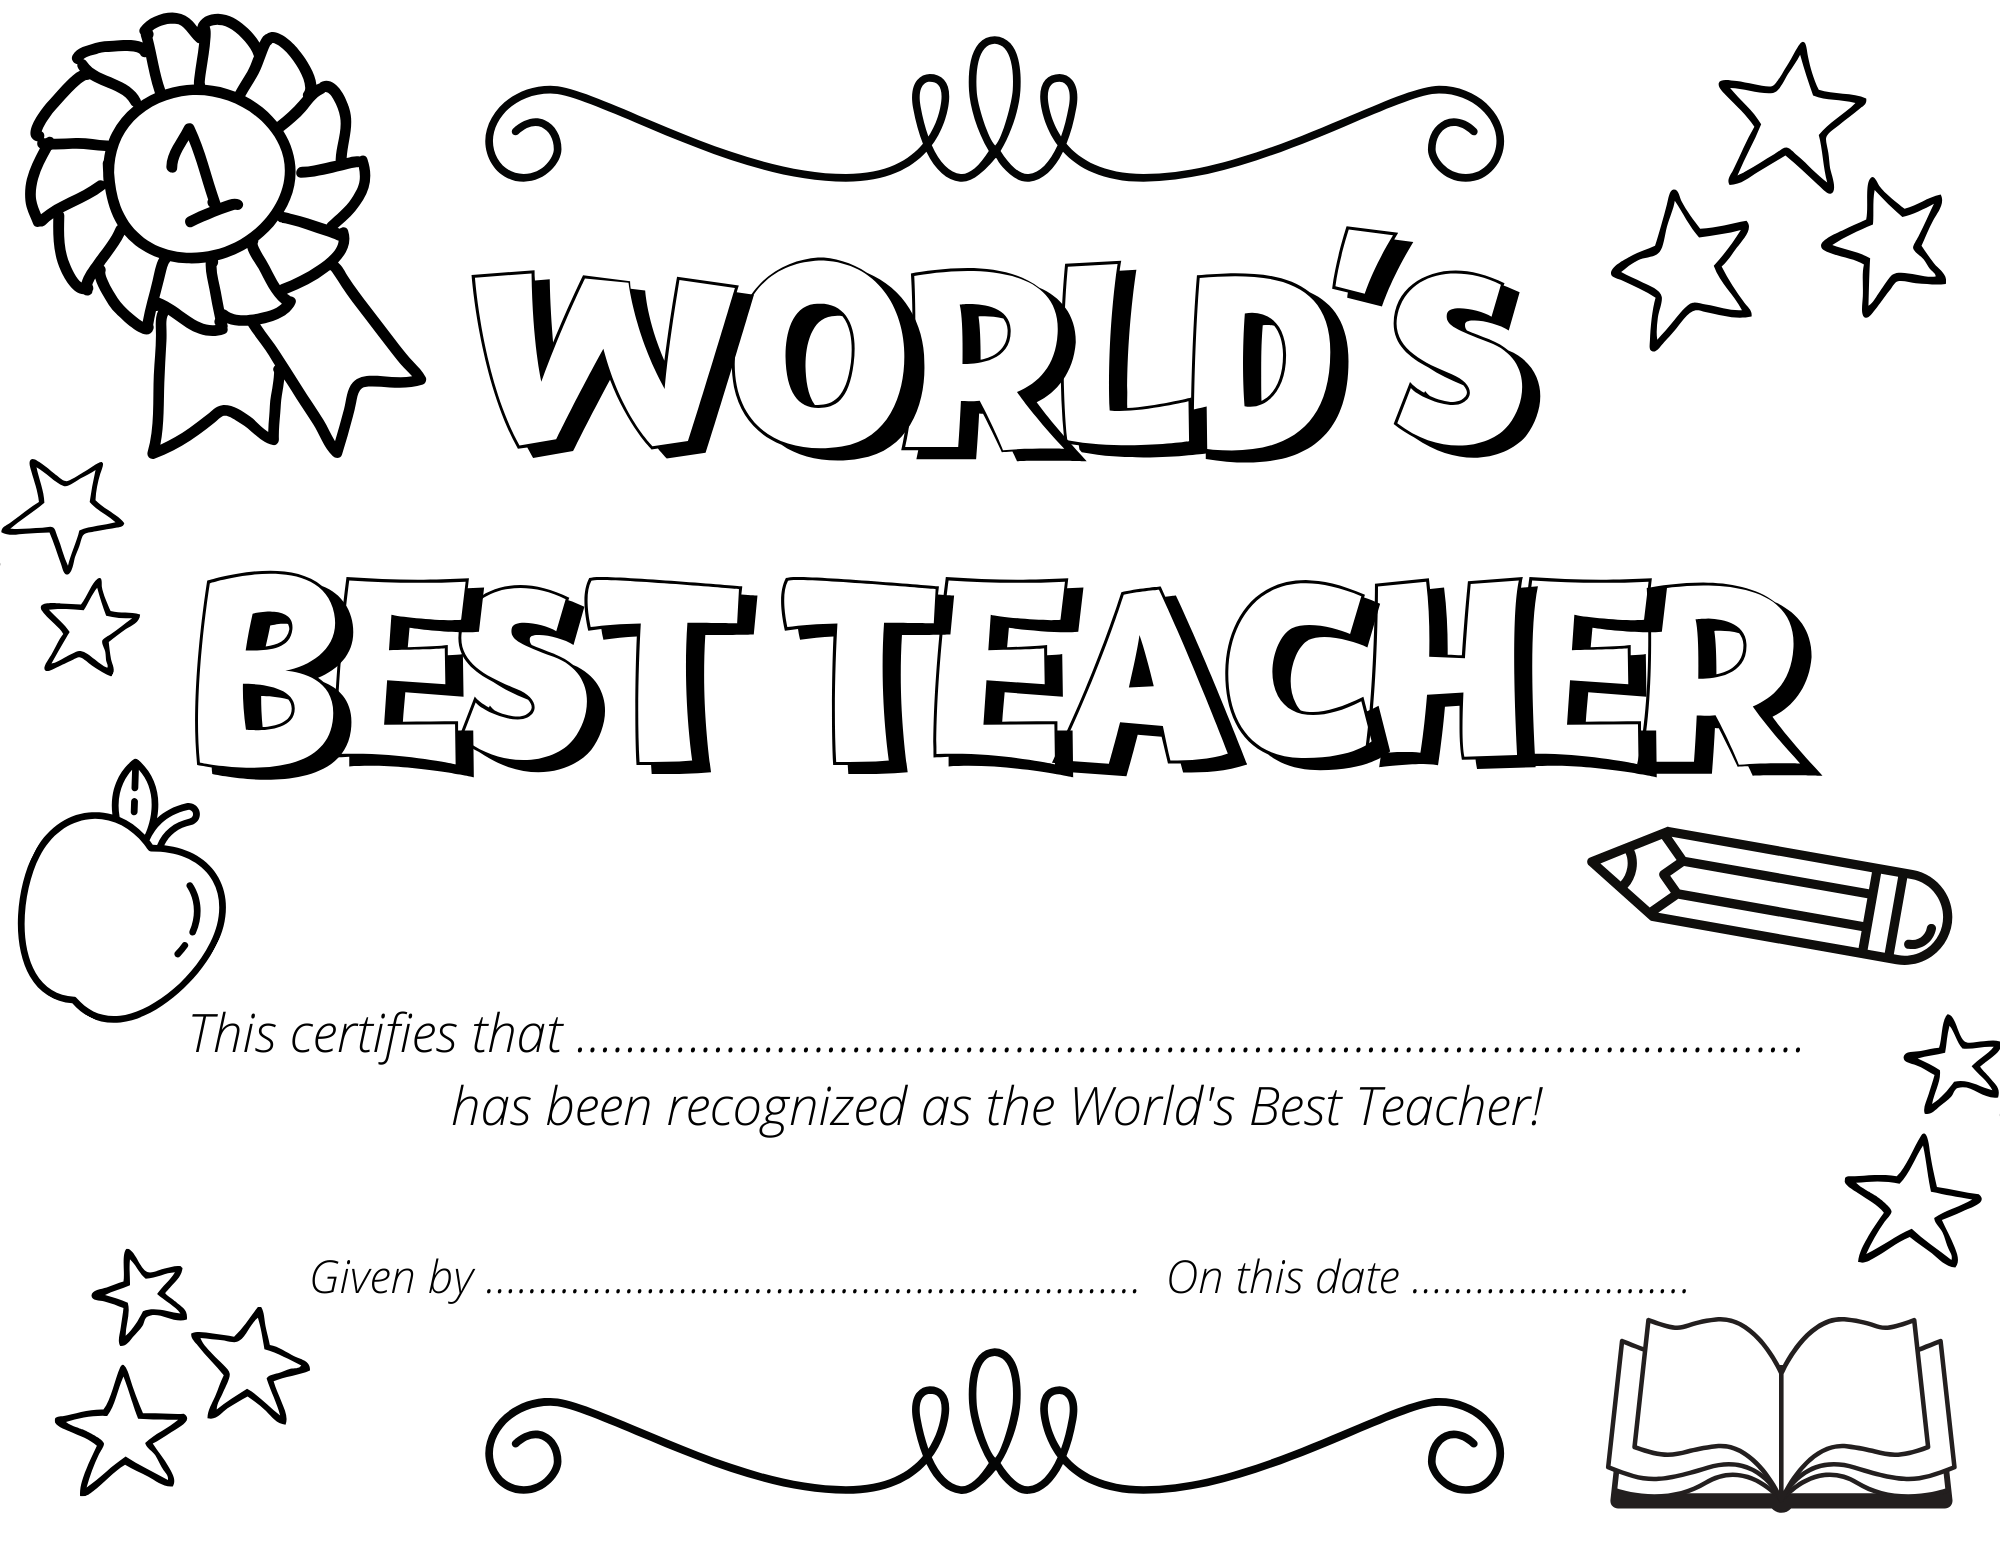 World's Best Teacher Certificate Coloring Page